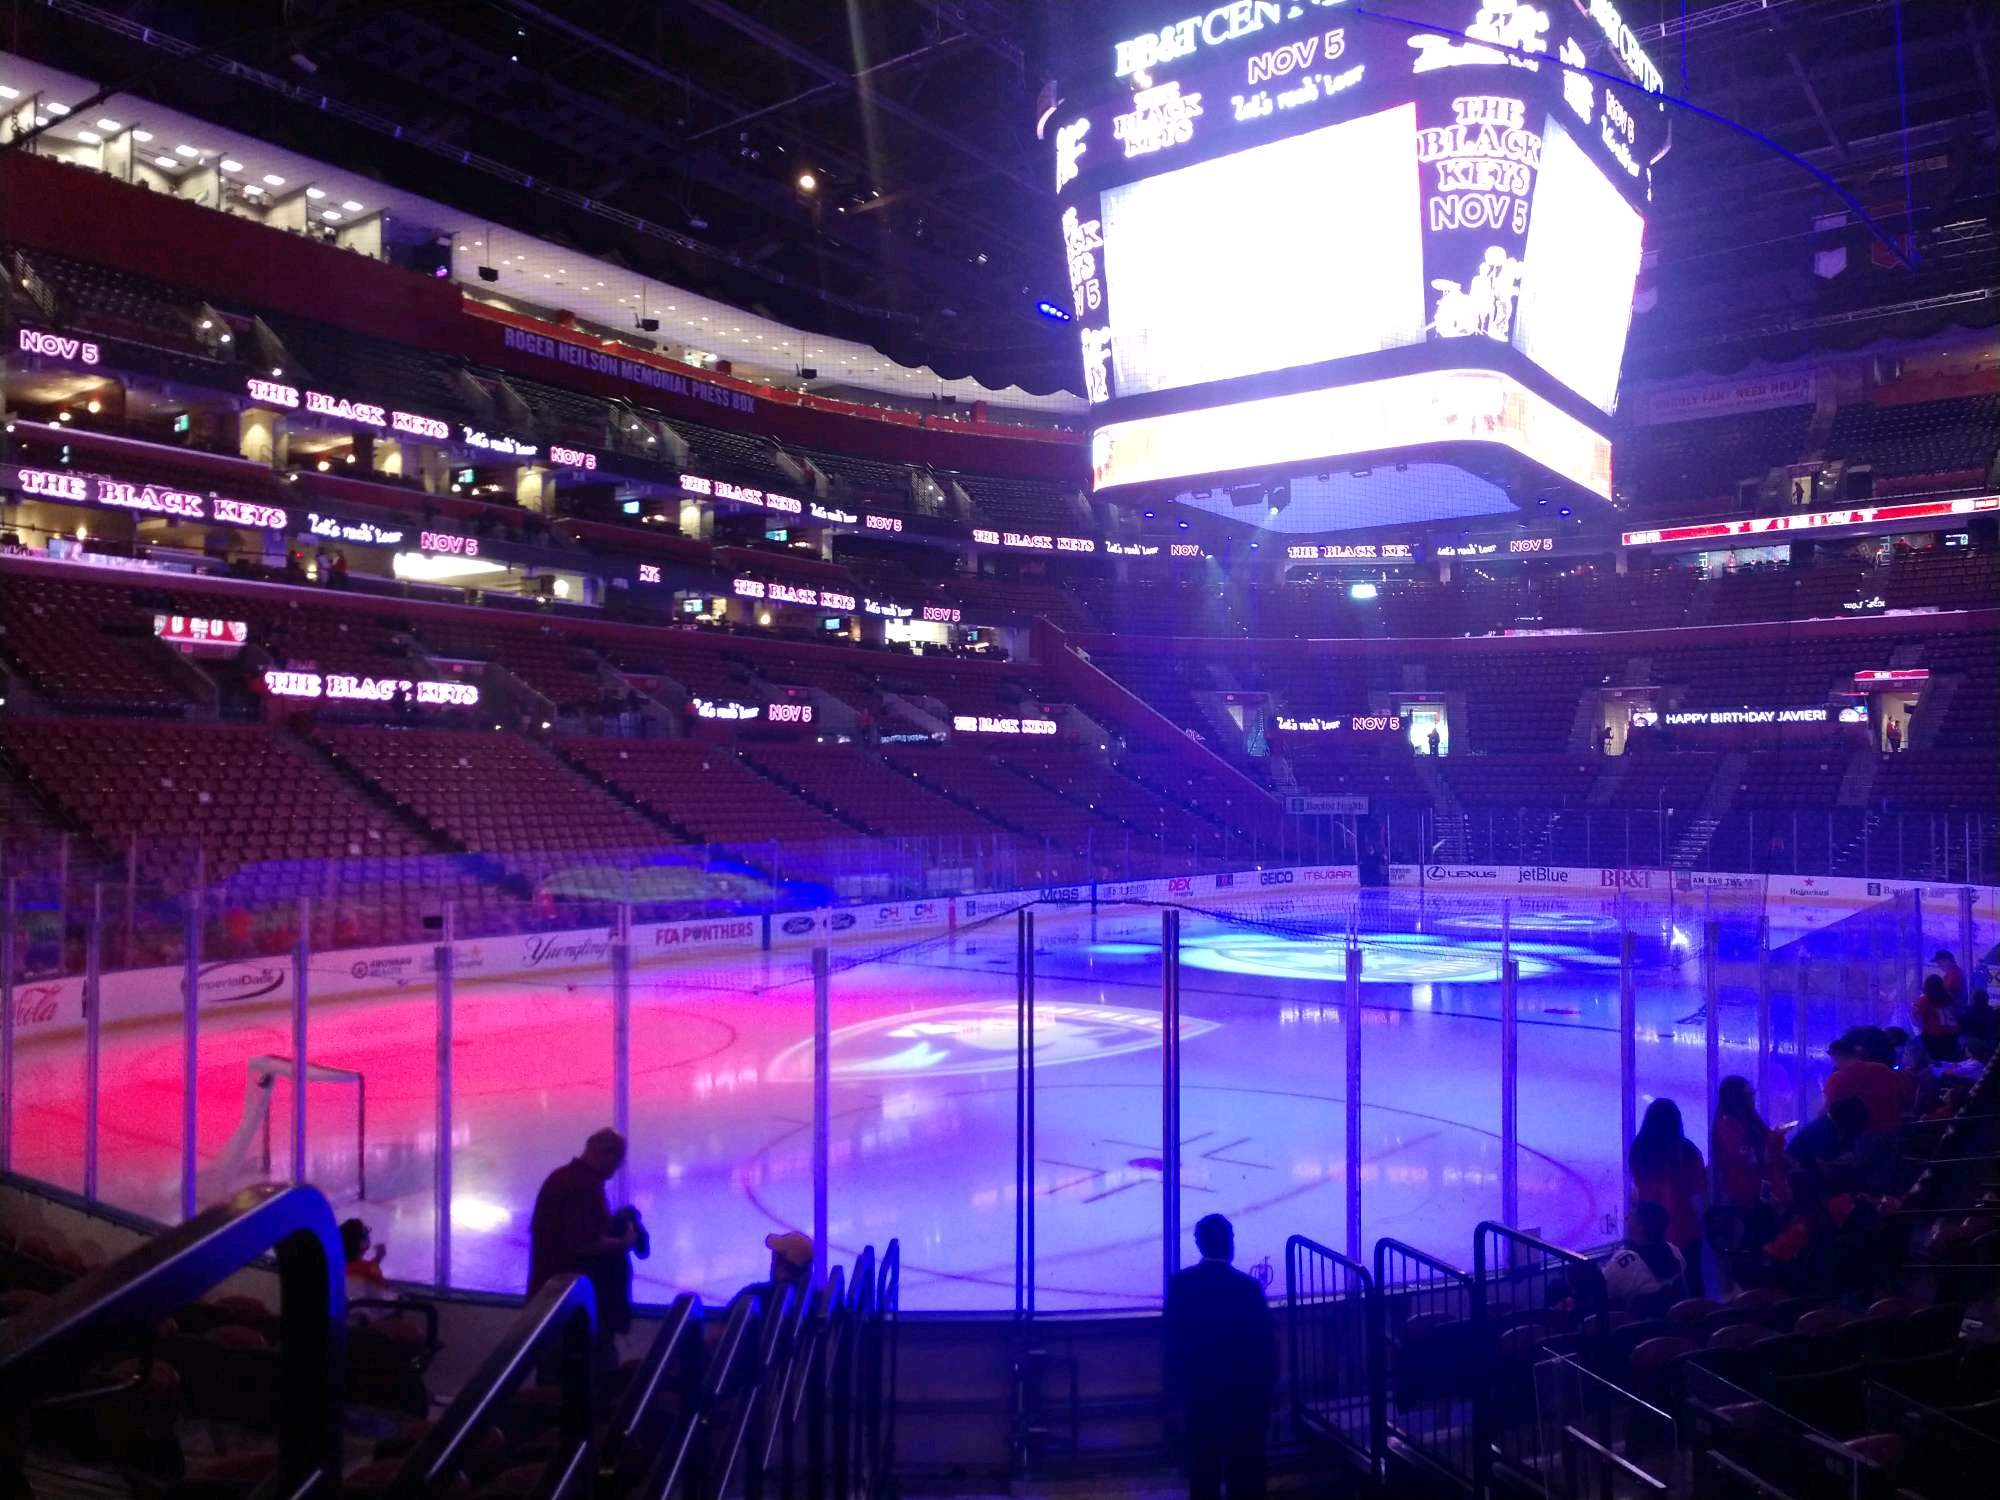 BB&T Center Section 107 Row 11 Seat 6